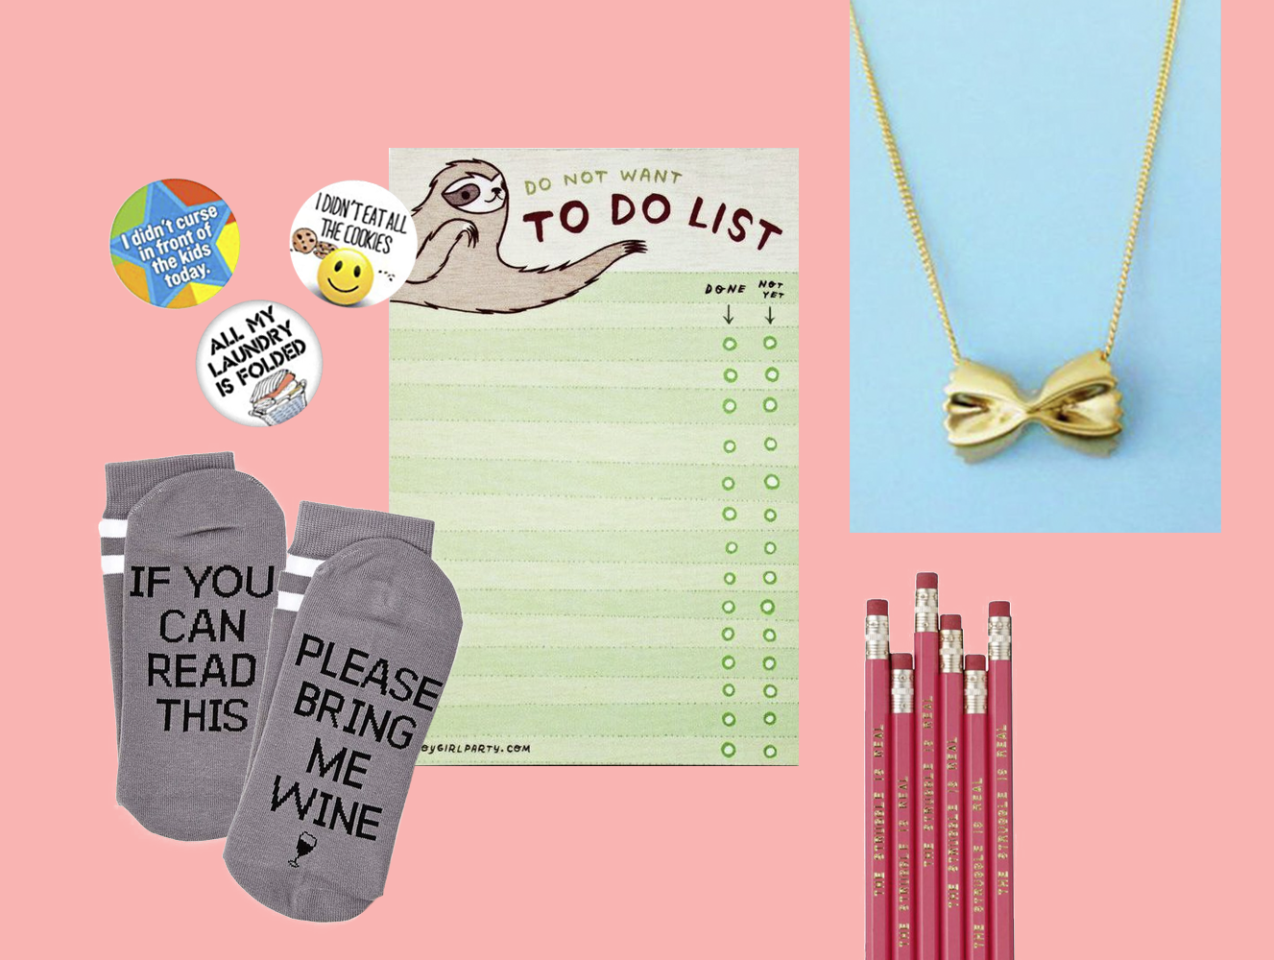 "<p>Sometimes you just have to go for the giggles. These picks (some of which are actually useful!) will have everyone in stitches at the <a href=""https://www.goodhousekeeping.com/holidays/gift-ideas/g4572/creative-white-elephant-gift-ideas/"" target=""_blank"">White Elephant party</a>. For more ideas, check out our favorite <a href=""https://www.goodhousekeeping.com/holidays/christmas-ideas/g4040/best-secret-santa-gifts/"" target=""_blank"">Secret Santa gifts</a>.</p>"